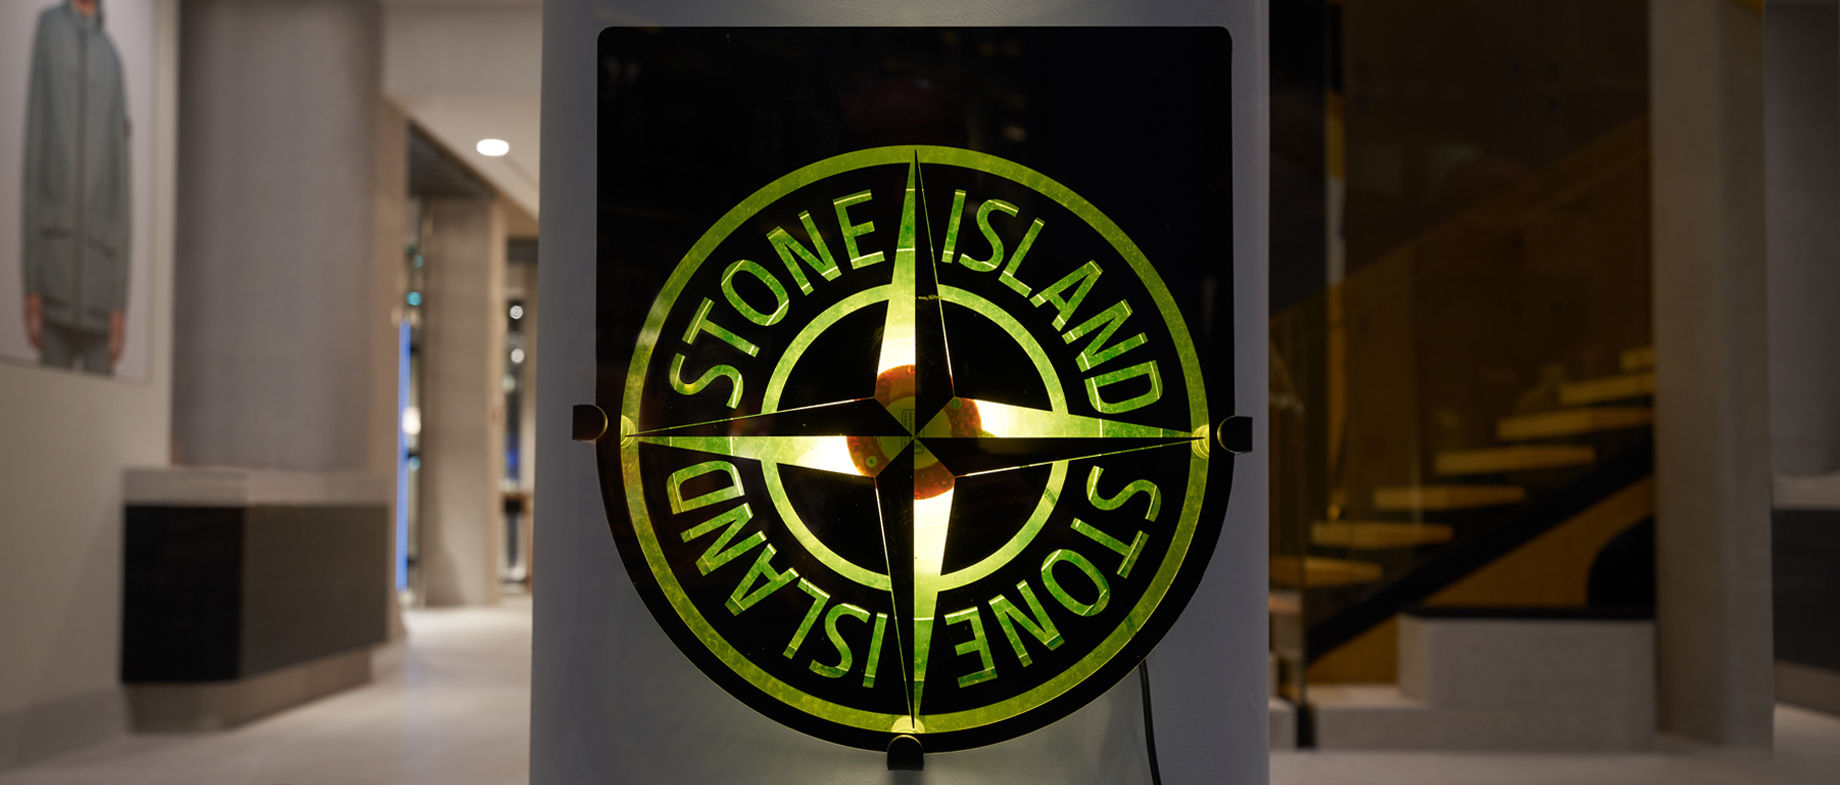 Back lit Stone Island compass rose logo with interior of a modern store as a background.